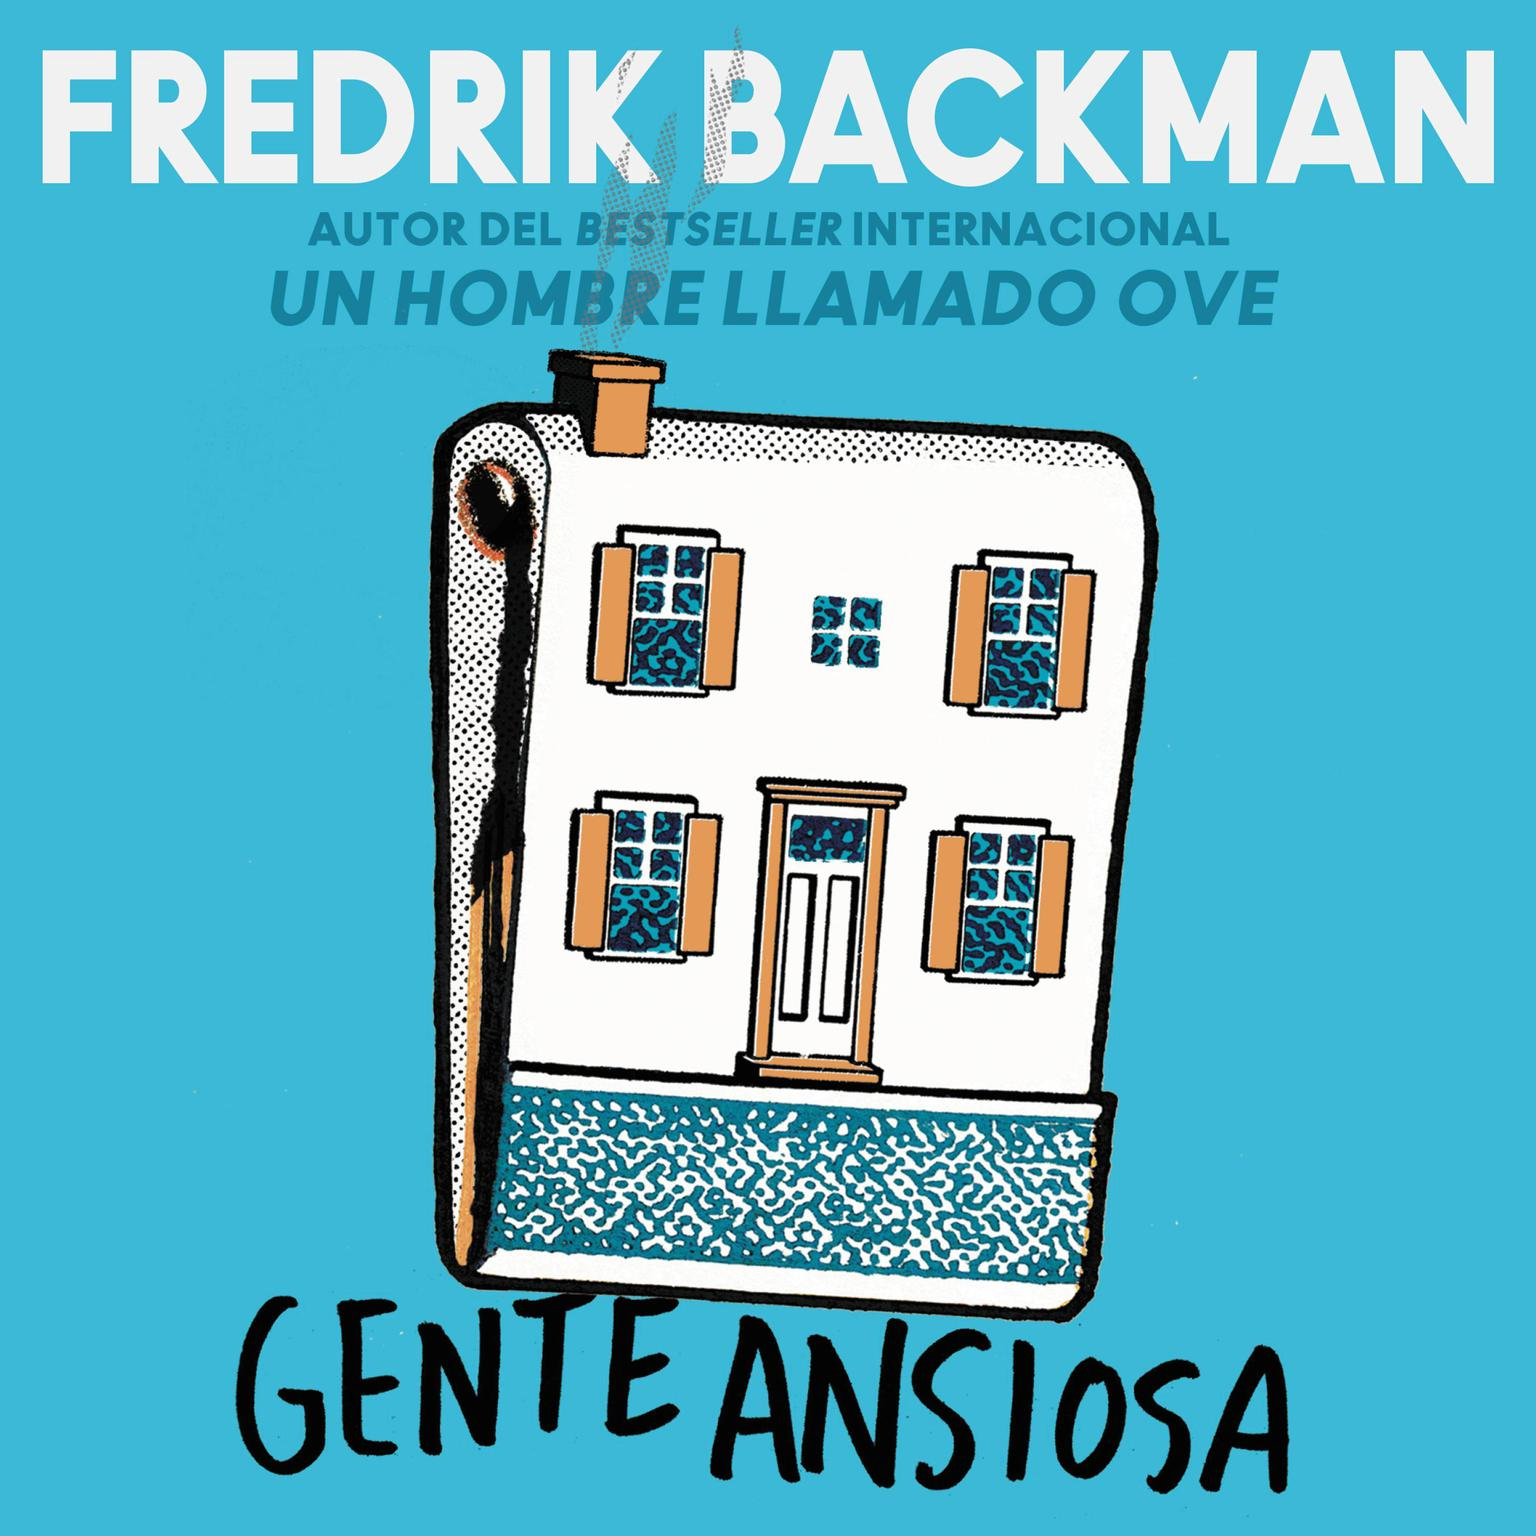 Anxious People Gente ansiosa (Spanish edition): A Novel Audiobook, by Fredrik Backman